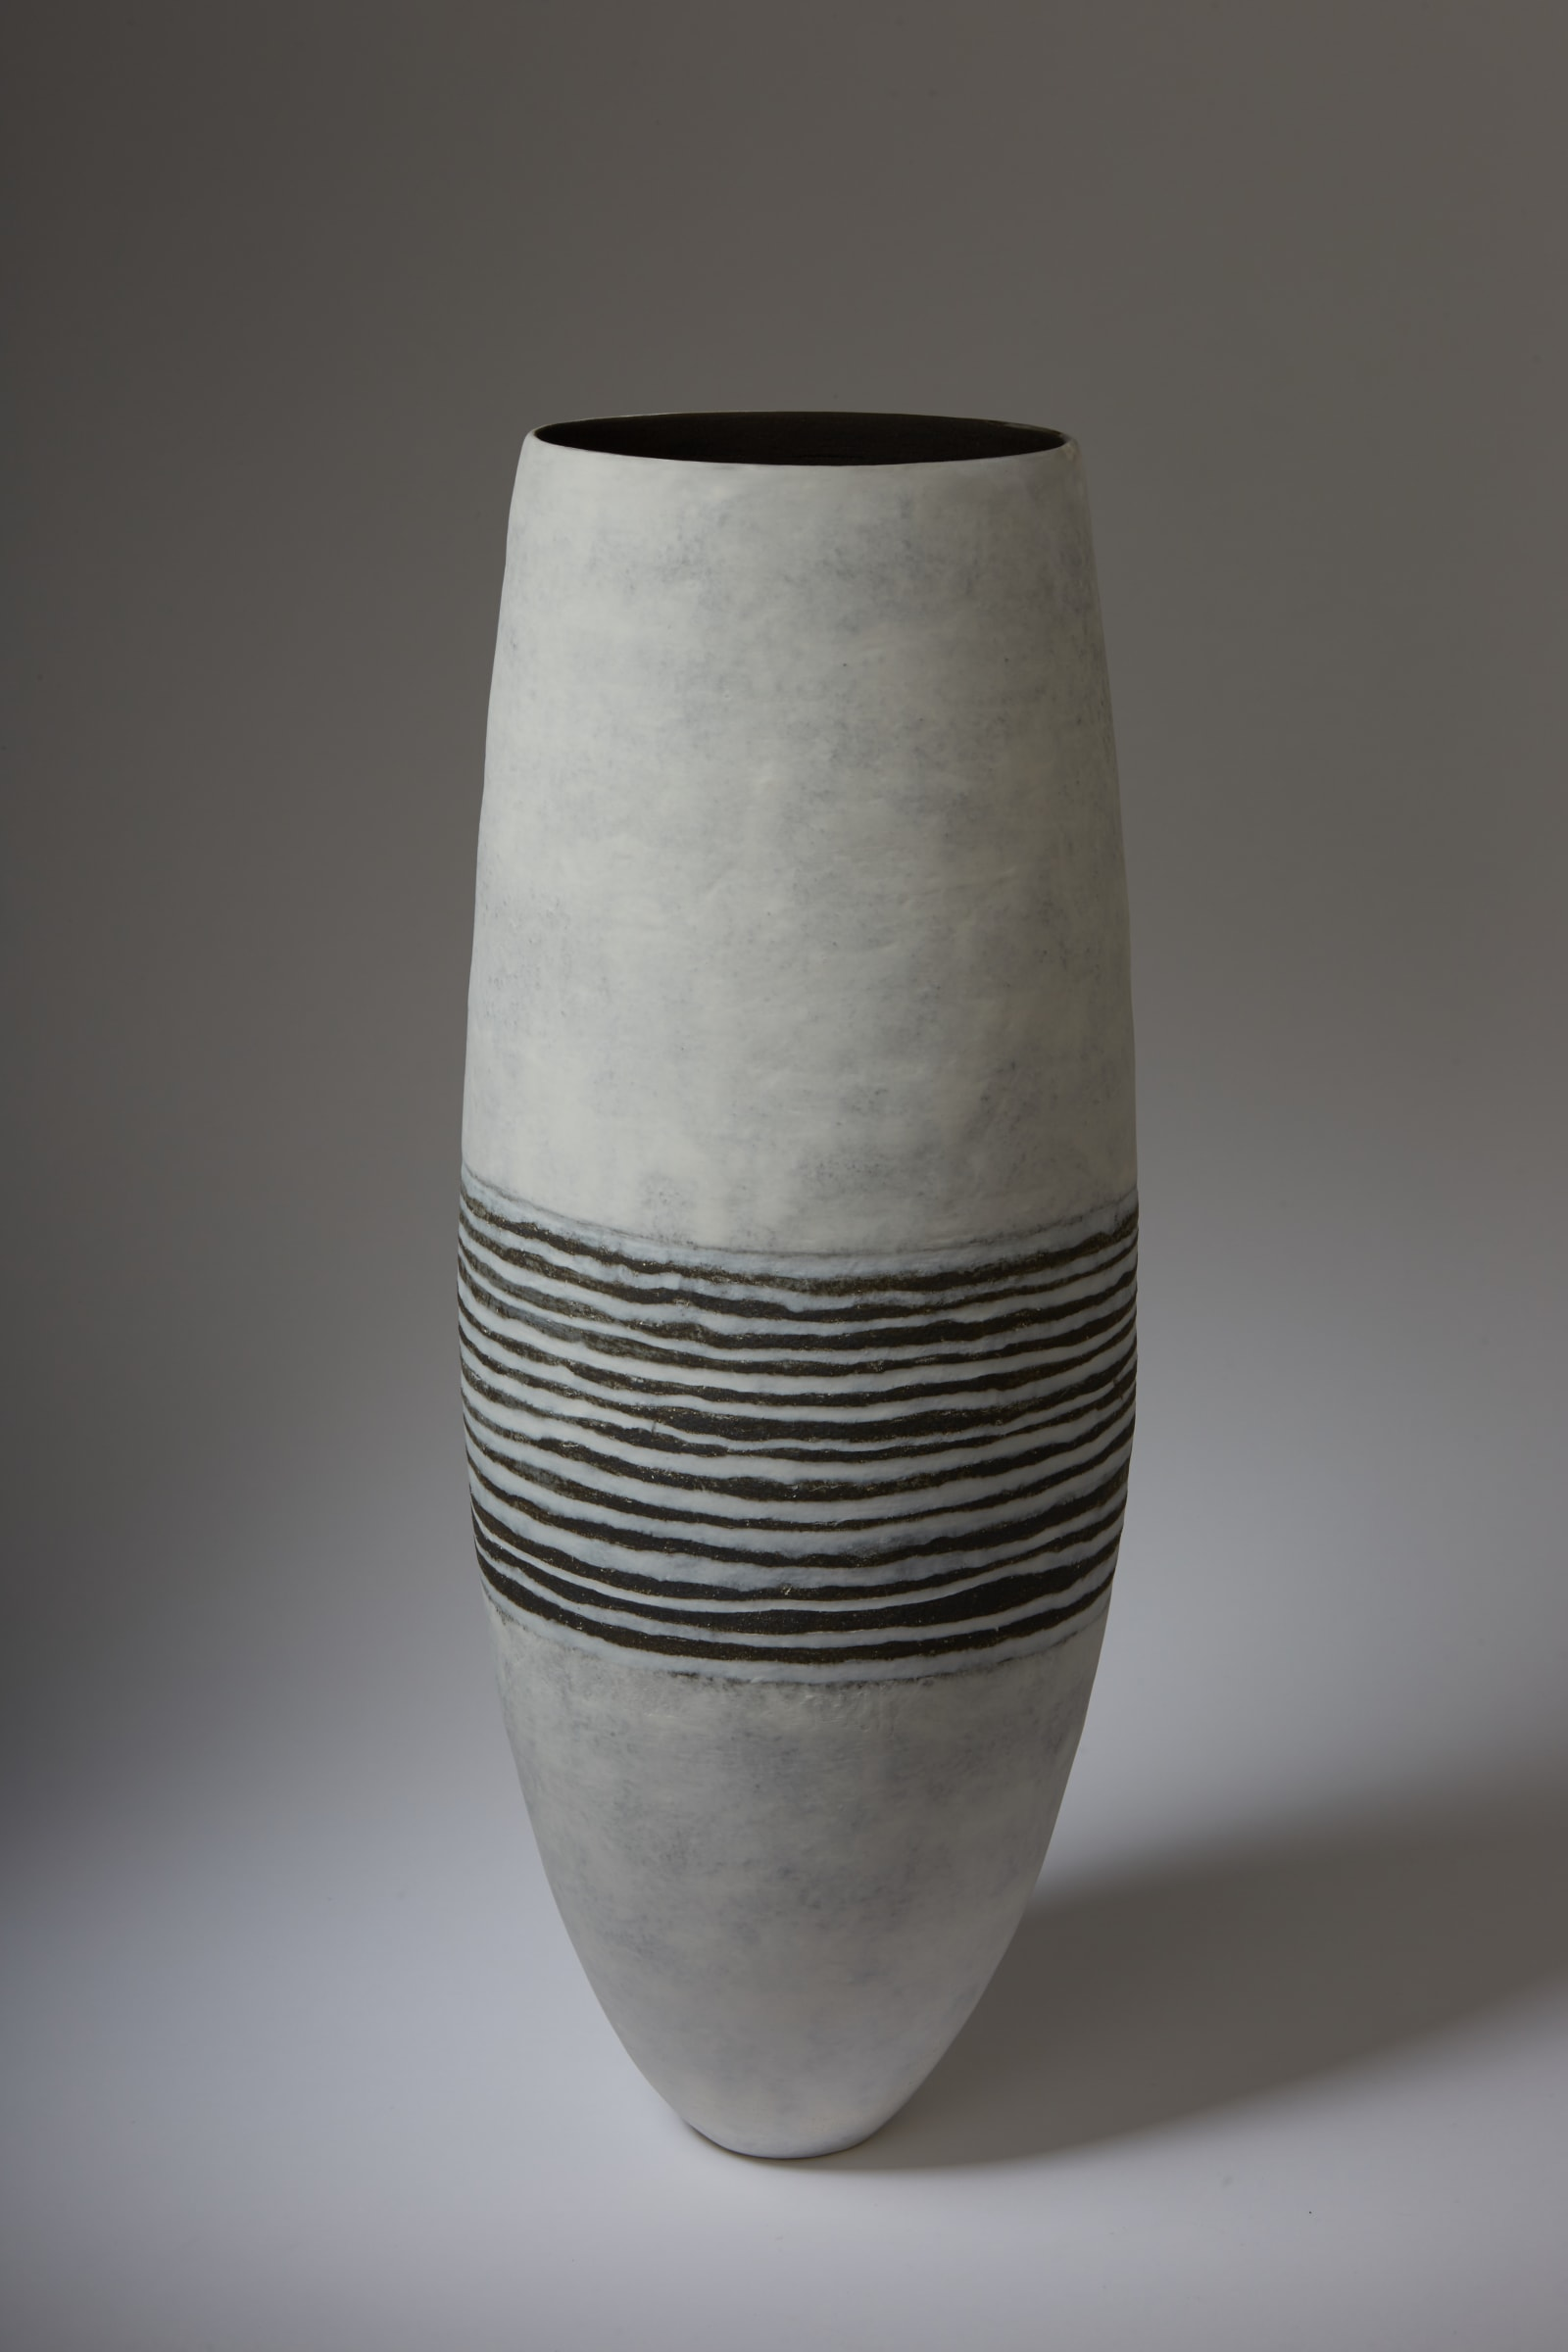 """<span class=""""link fancybox-details-link""""><a href=""""/content/feature/35/artworks7972/"""">View Detail Page</a></span><div class=""""signed_and_dated"""">signed to the base</div> <div class=""""medium"""">stoneware and white porcelain, with porcelain slip</div> <div class=""""dimensions"""">h. 57 cm x w. 20 cm x d. 16 cm</div>"""